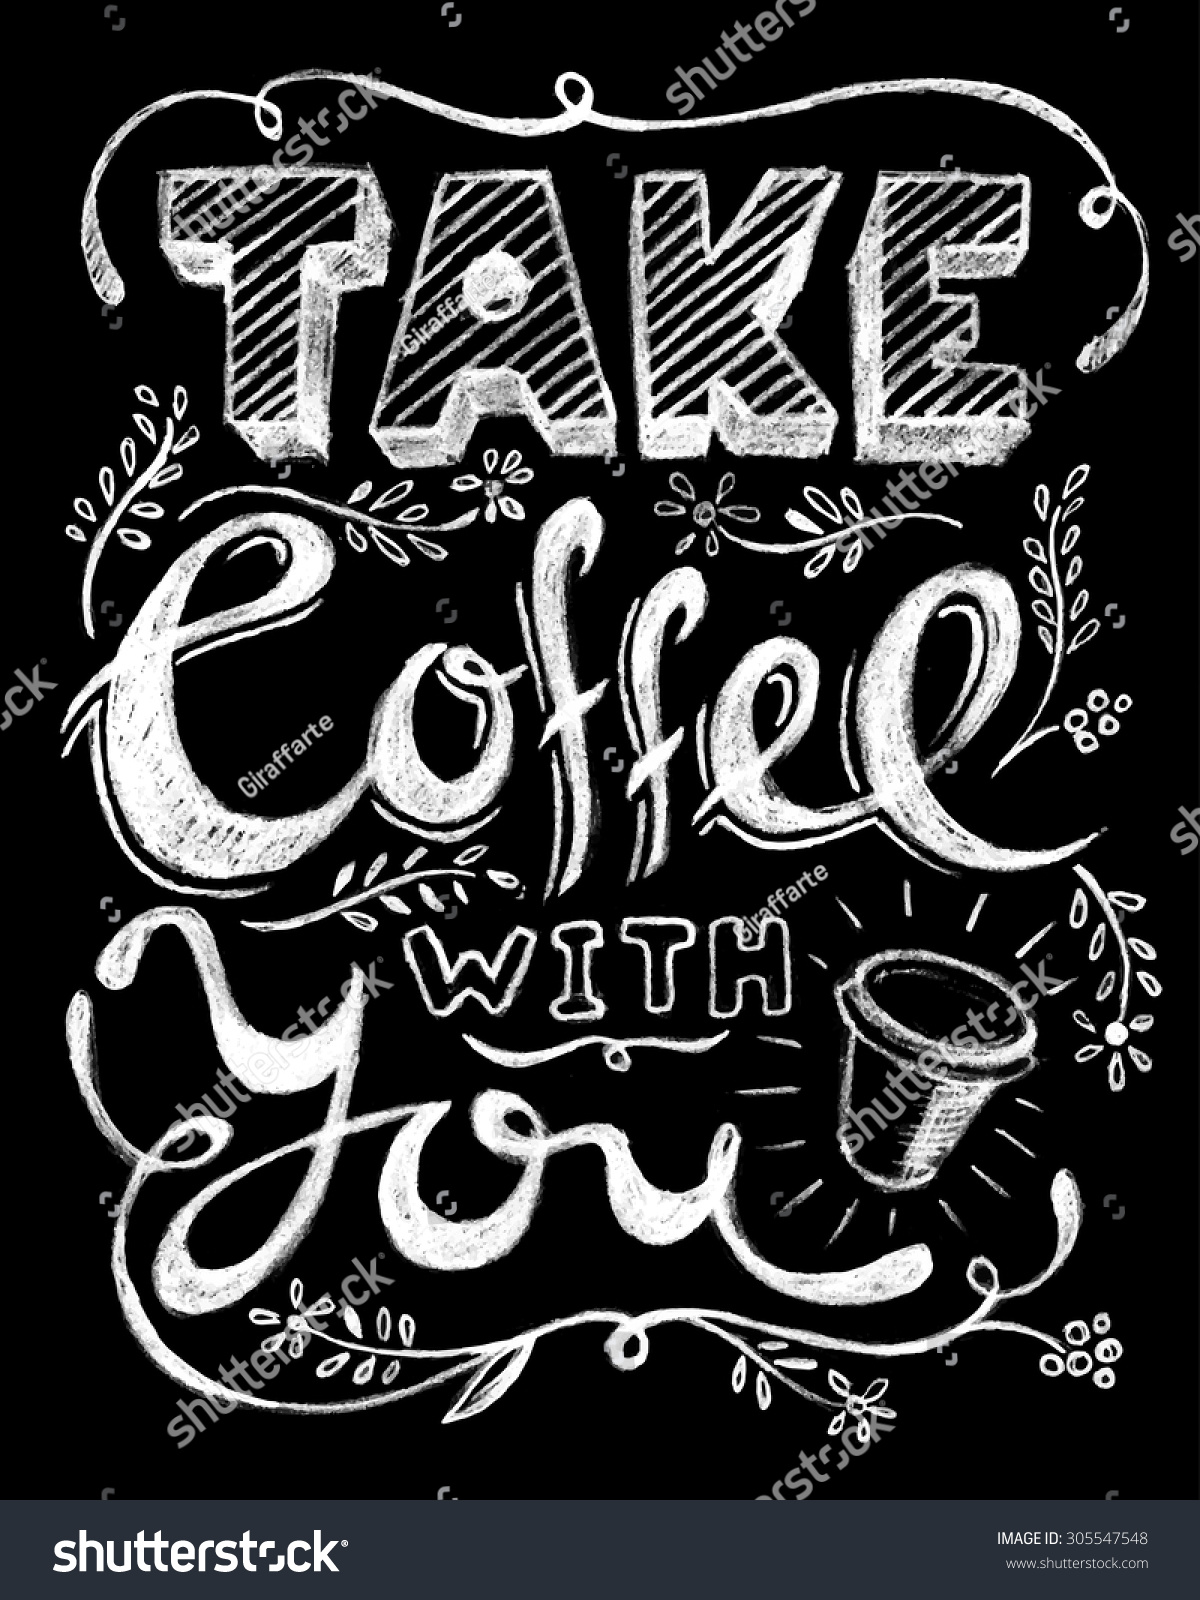 Take Coffee You Lettering Coffee Quotes Stock Vector ...